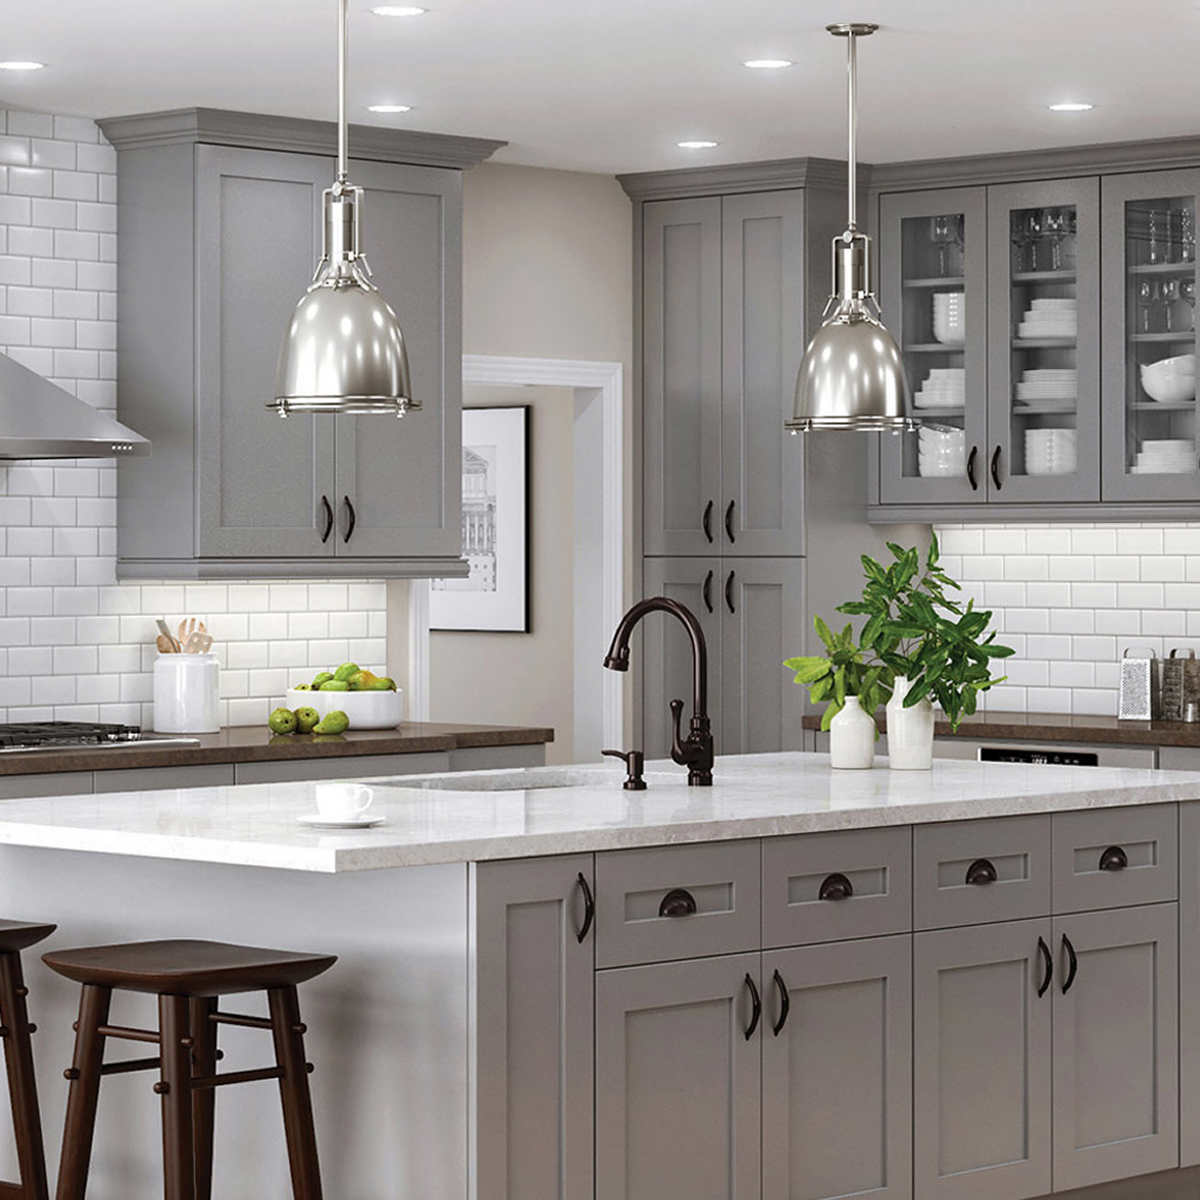 Semi Custom Kitchen And Bath Cabinets By All Wood Cabinetry Ships In 7 10 Days